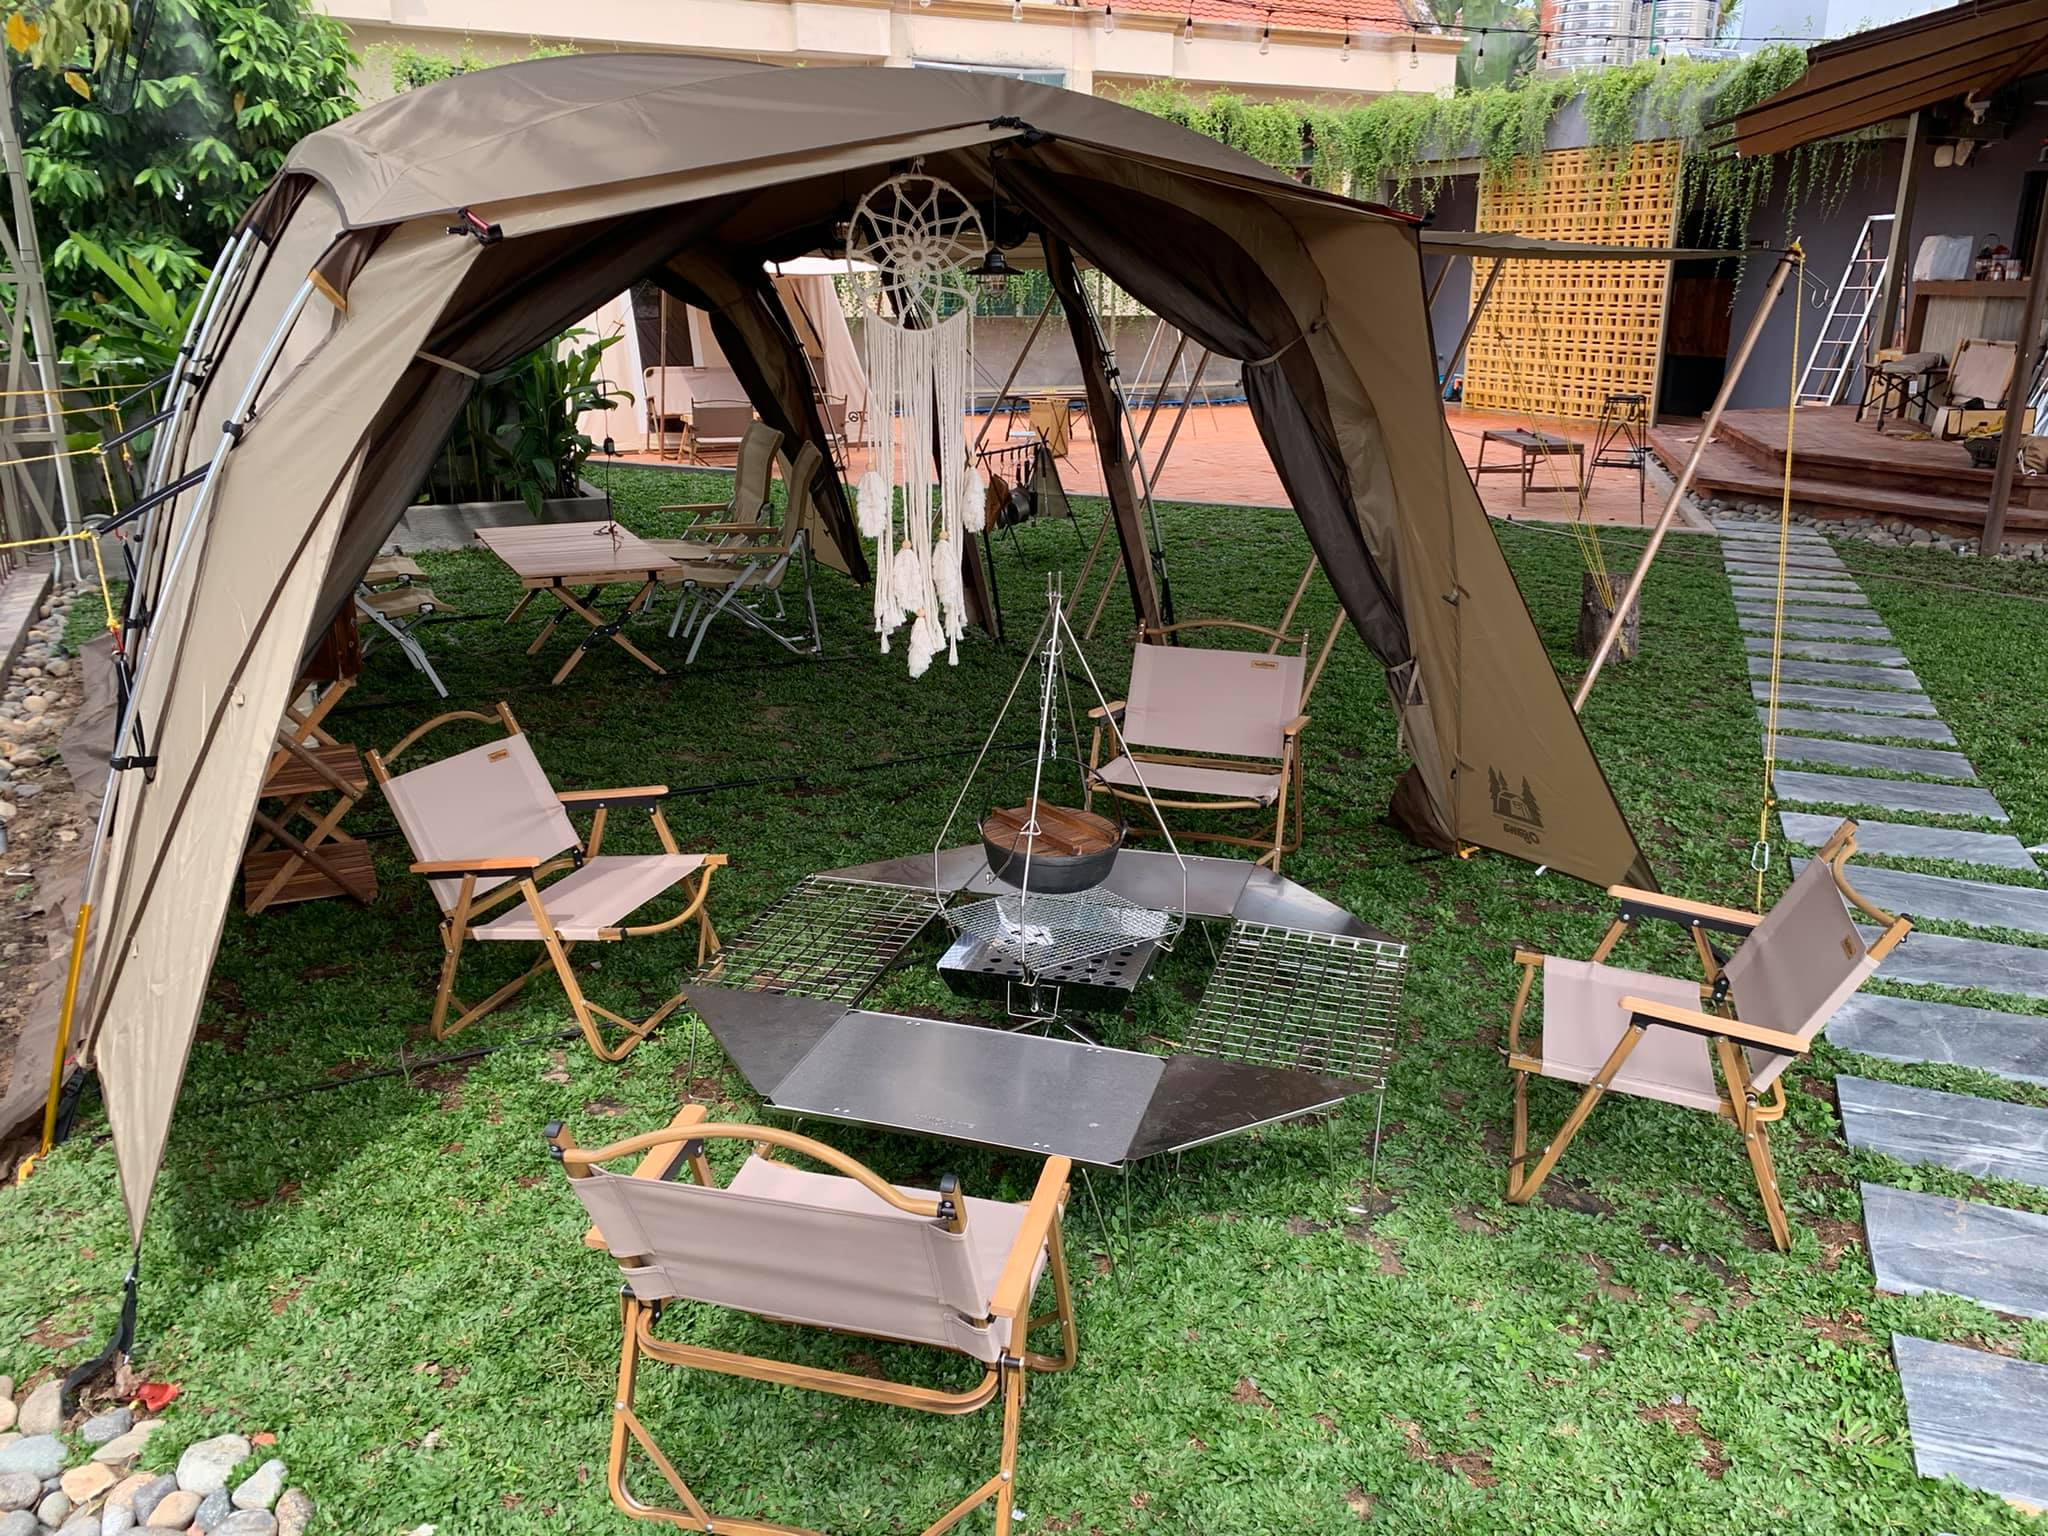 The cafe is equipped with unique design from professional camping equipment such as tents, lamps, pans, pots, kettles or grills amid the green space.